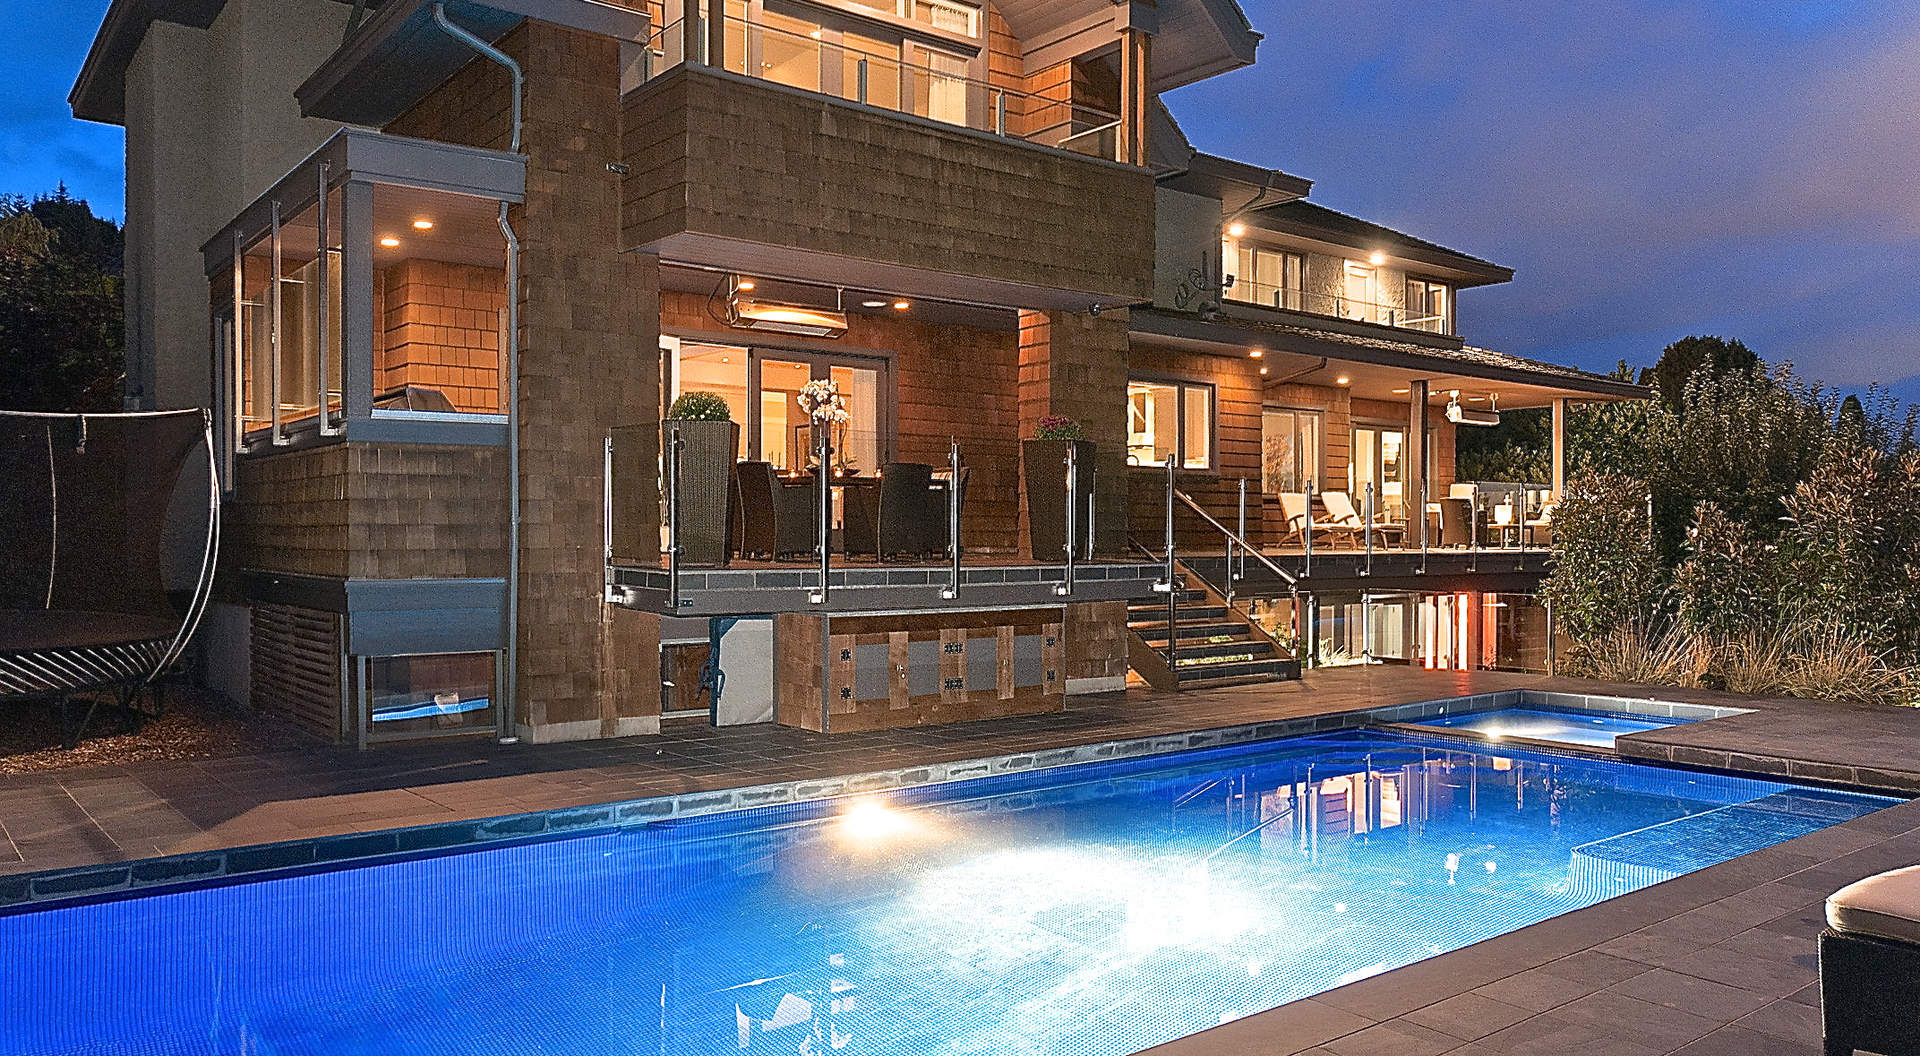 A Sparkling Outdoor Pool and Hot Tub